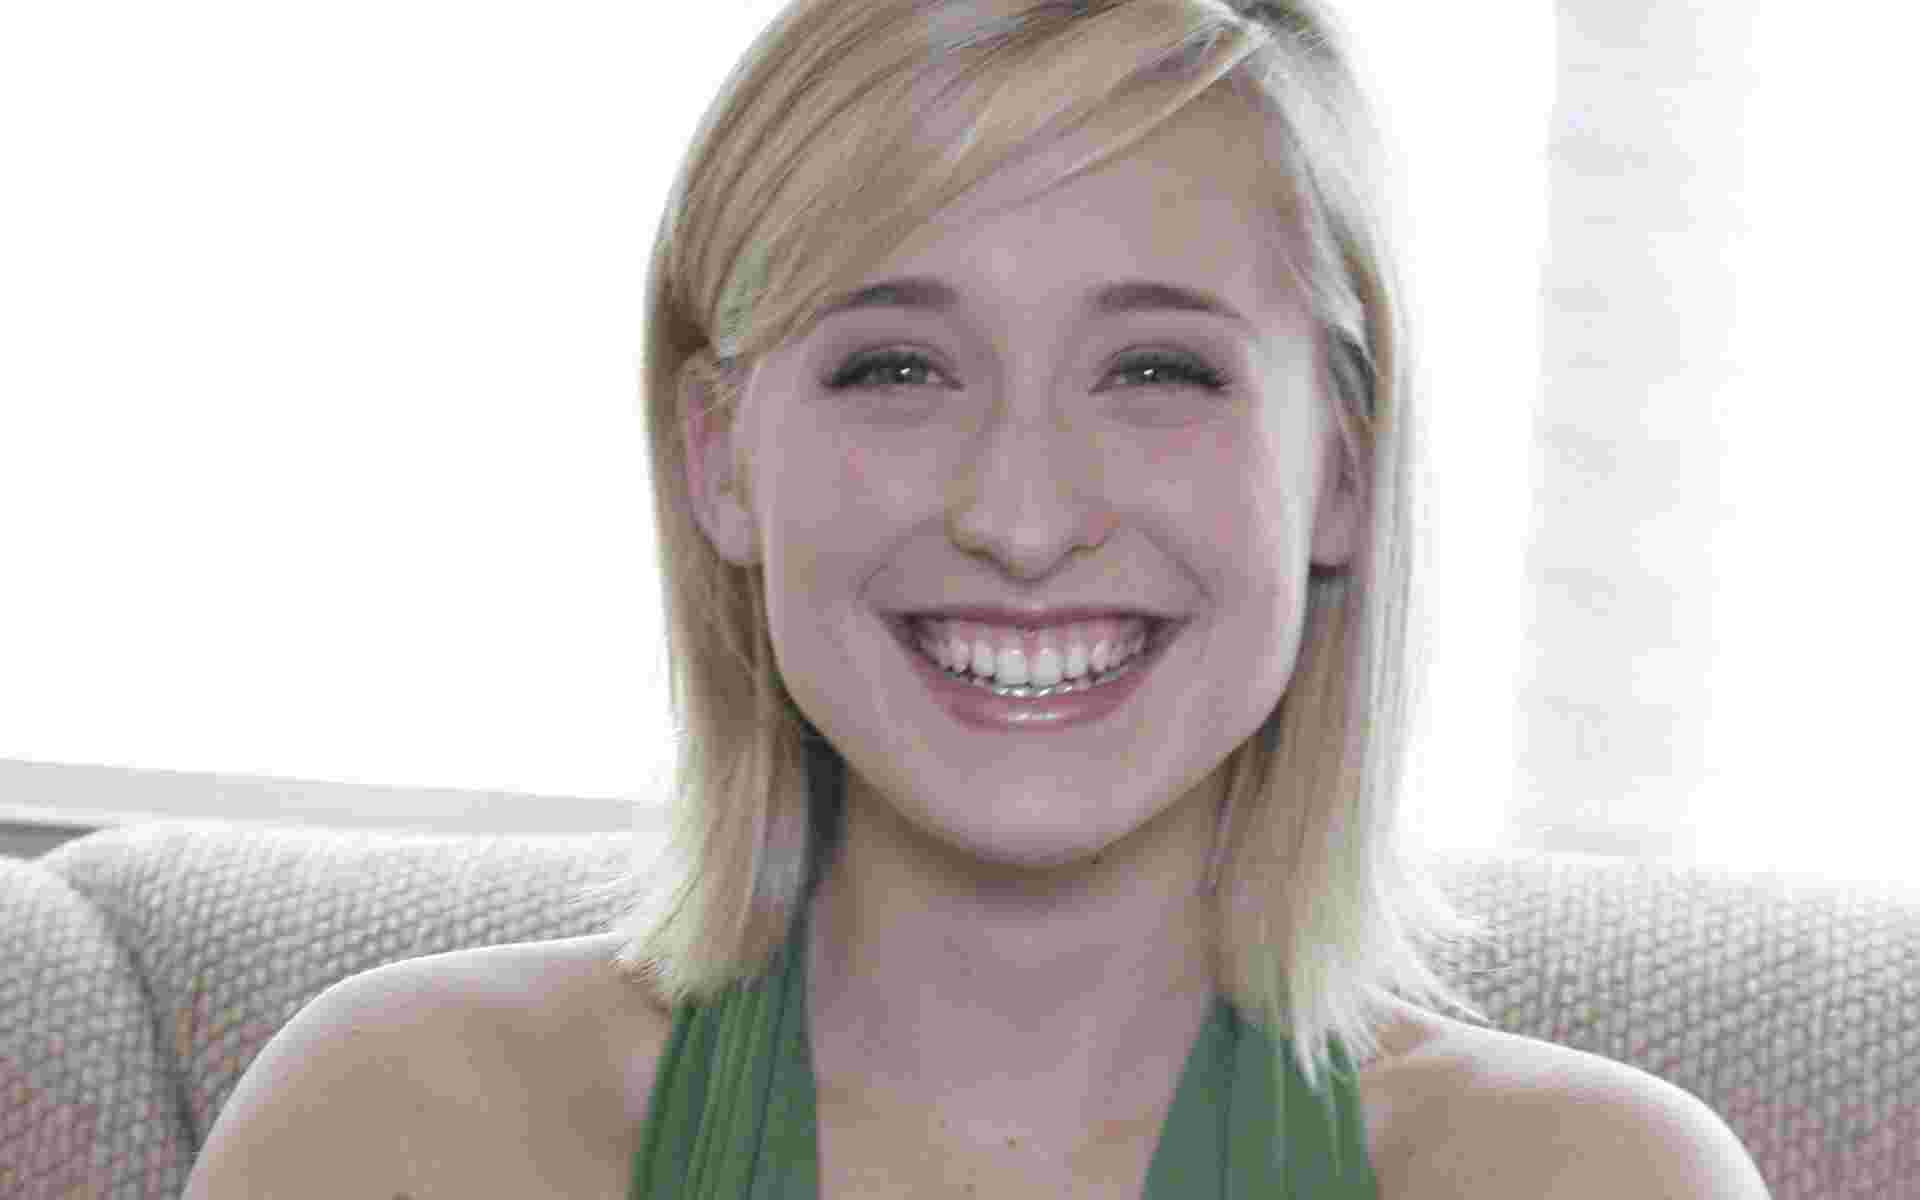 Allison Mack 035 wallpaper   Allison Mack   Celebrities Girls 1920x1200